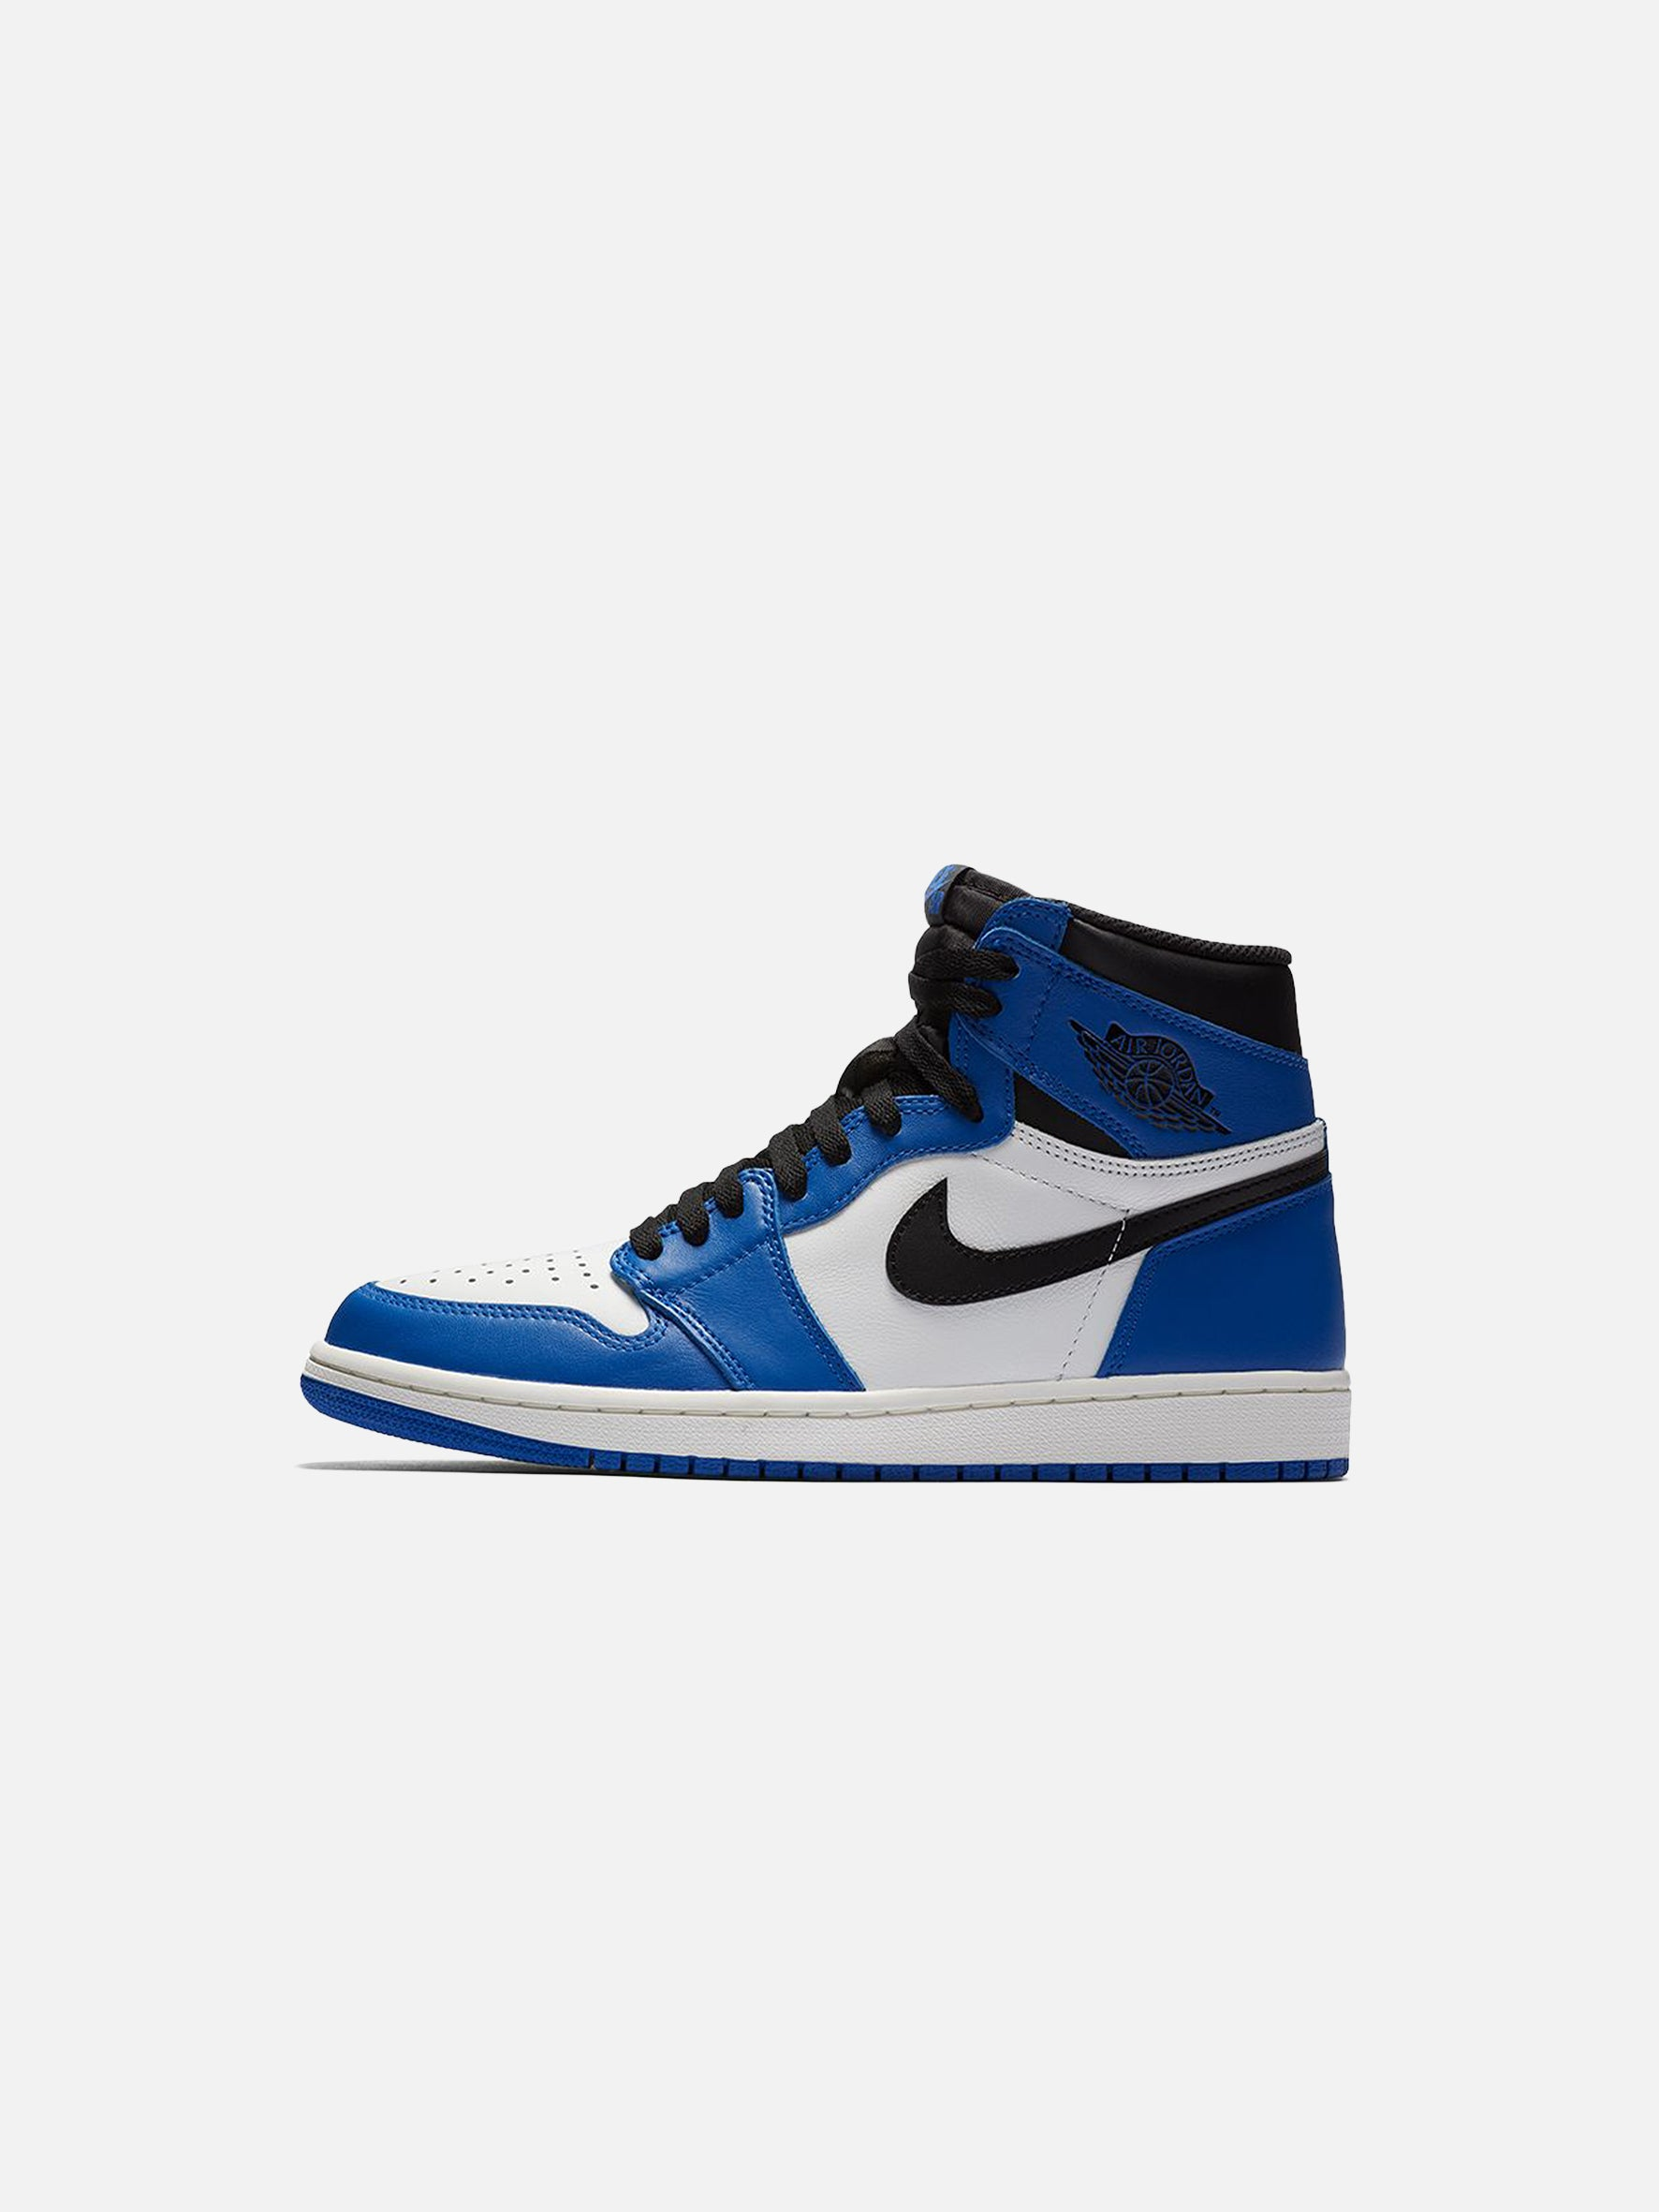 Nike Air Jordan 1 Retro Game Royal